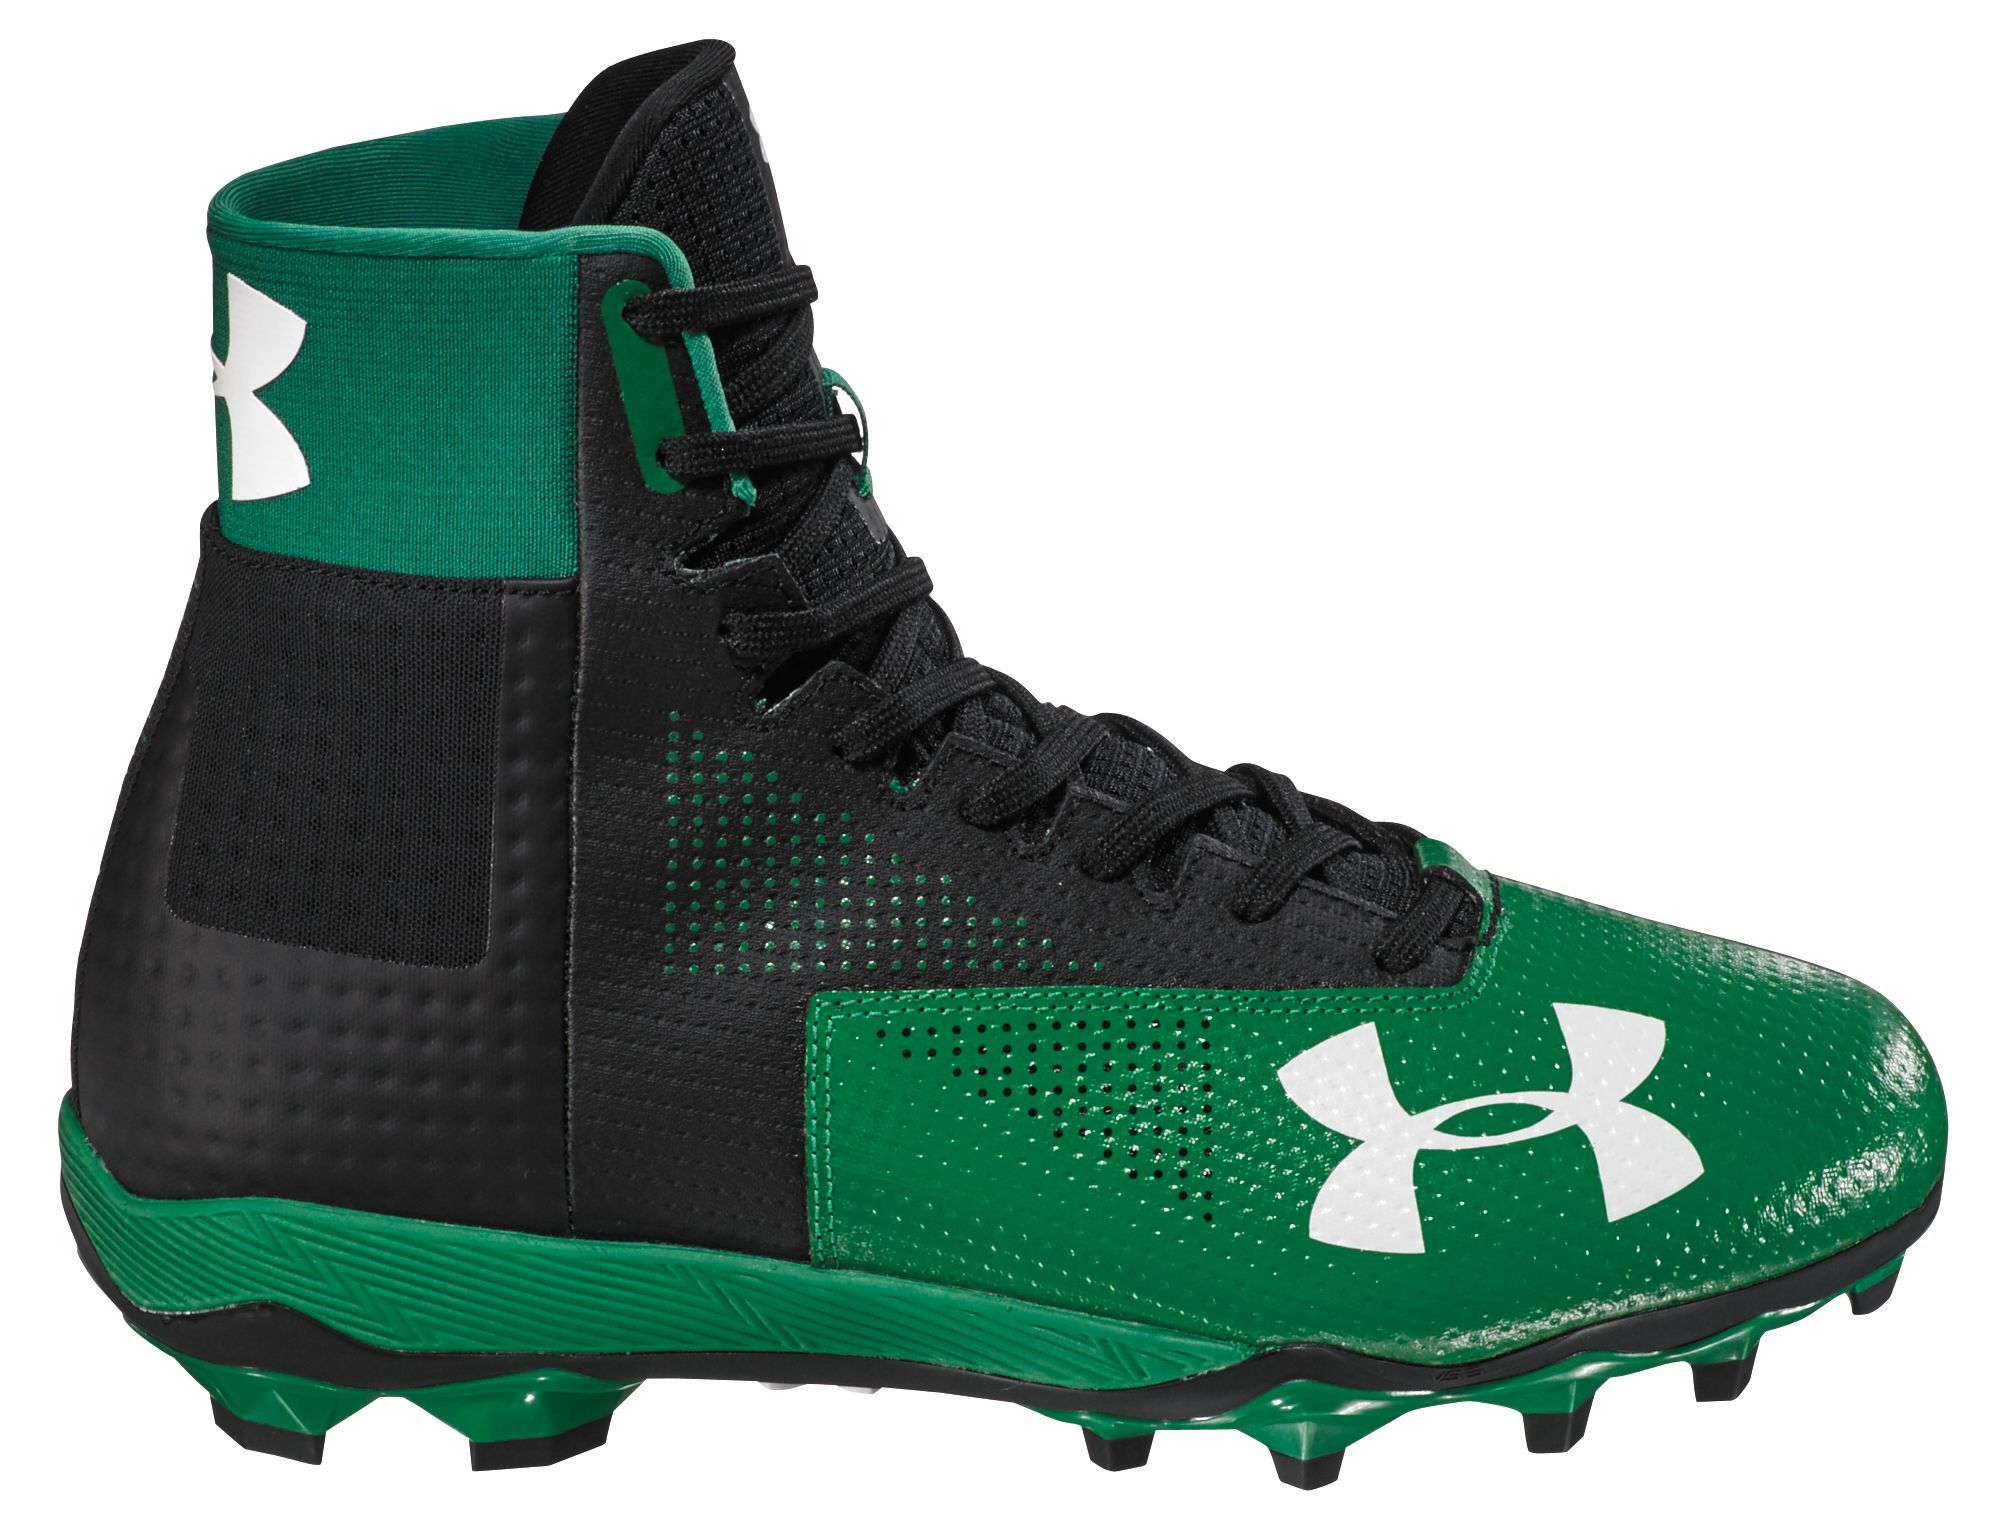 836b2f9ac Under Armour Men s Renegade Mid MC Football Cleats